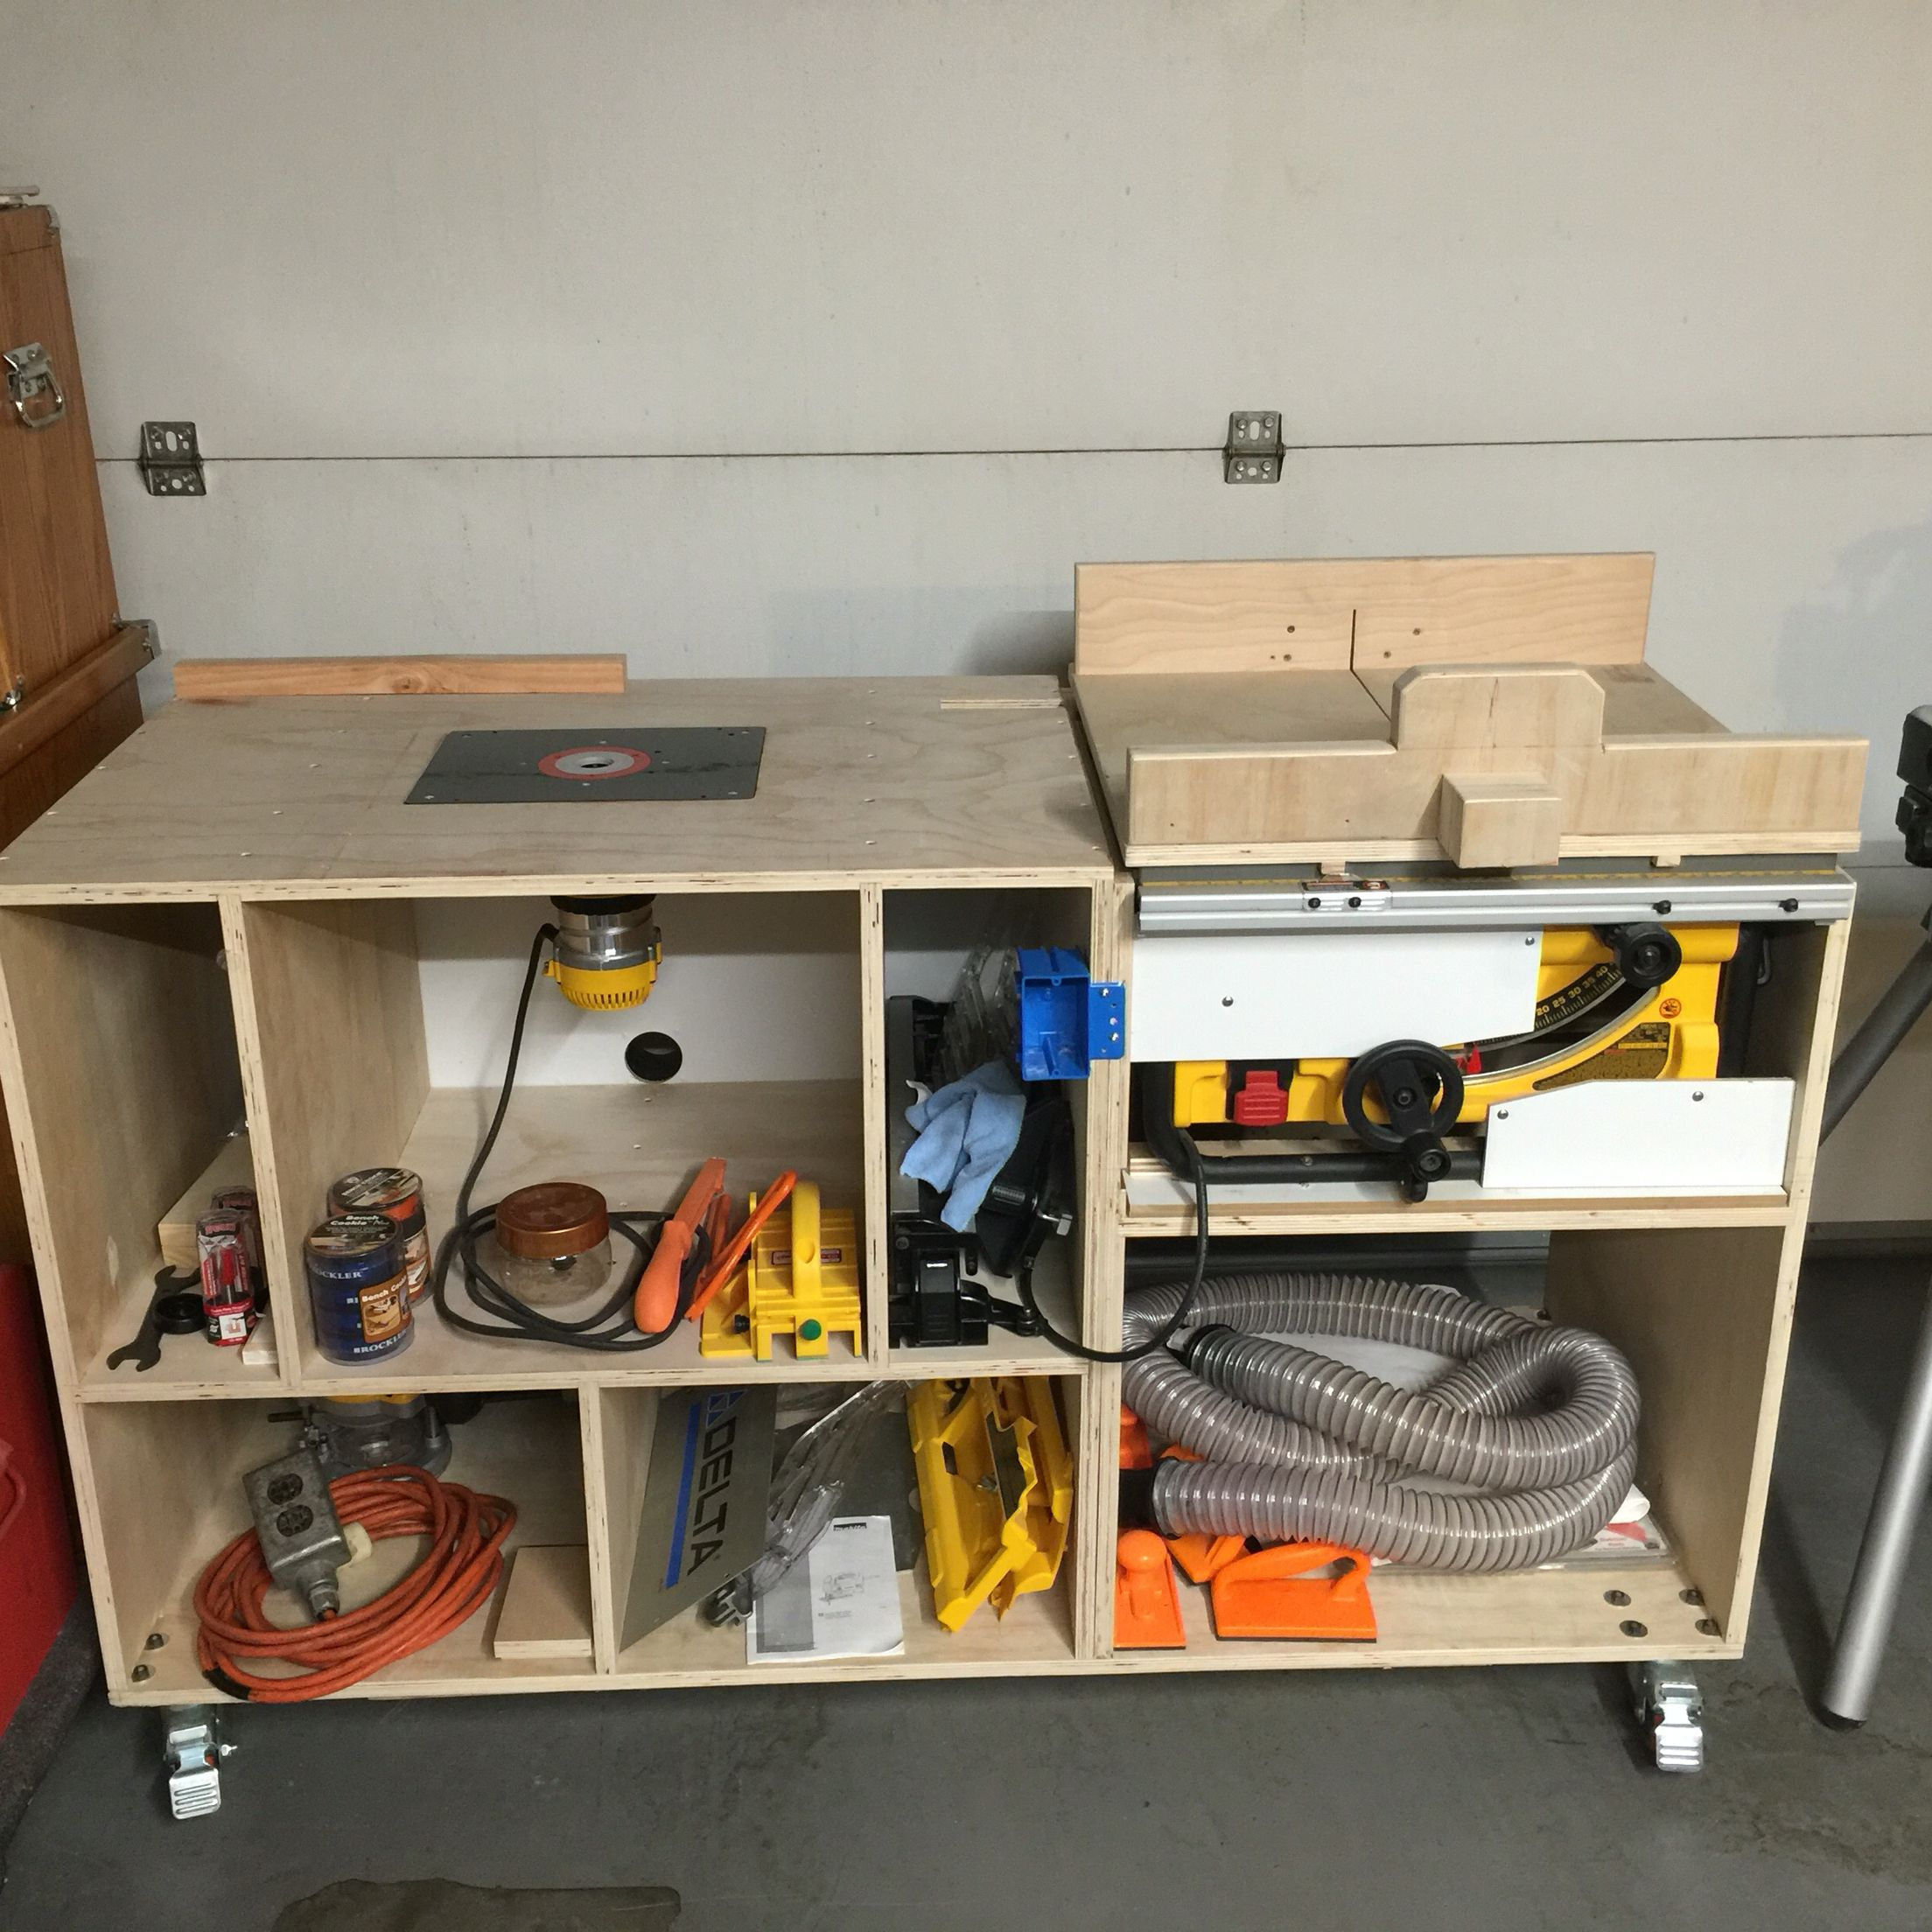 Dewalt router table de2000 best router 2017 cast iron router table top uk best 2017 greentooth Image collections